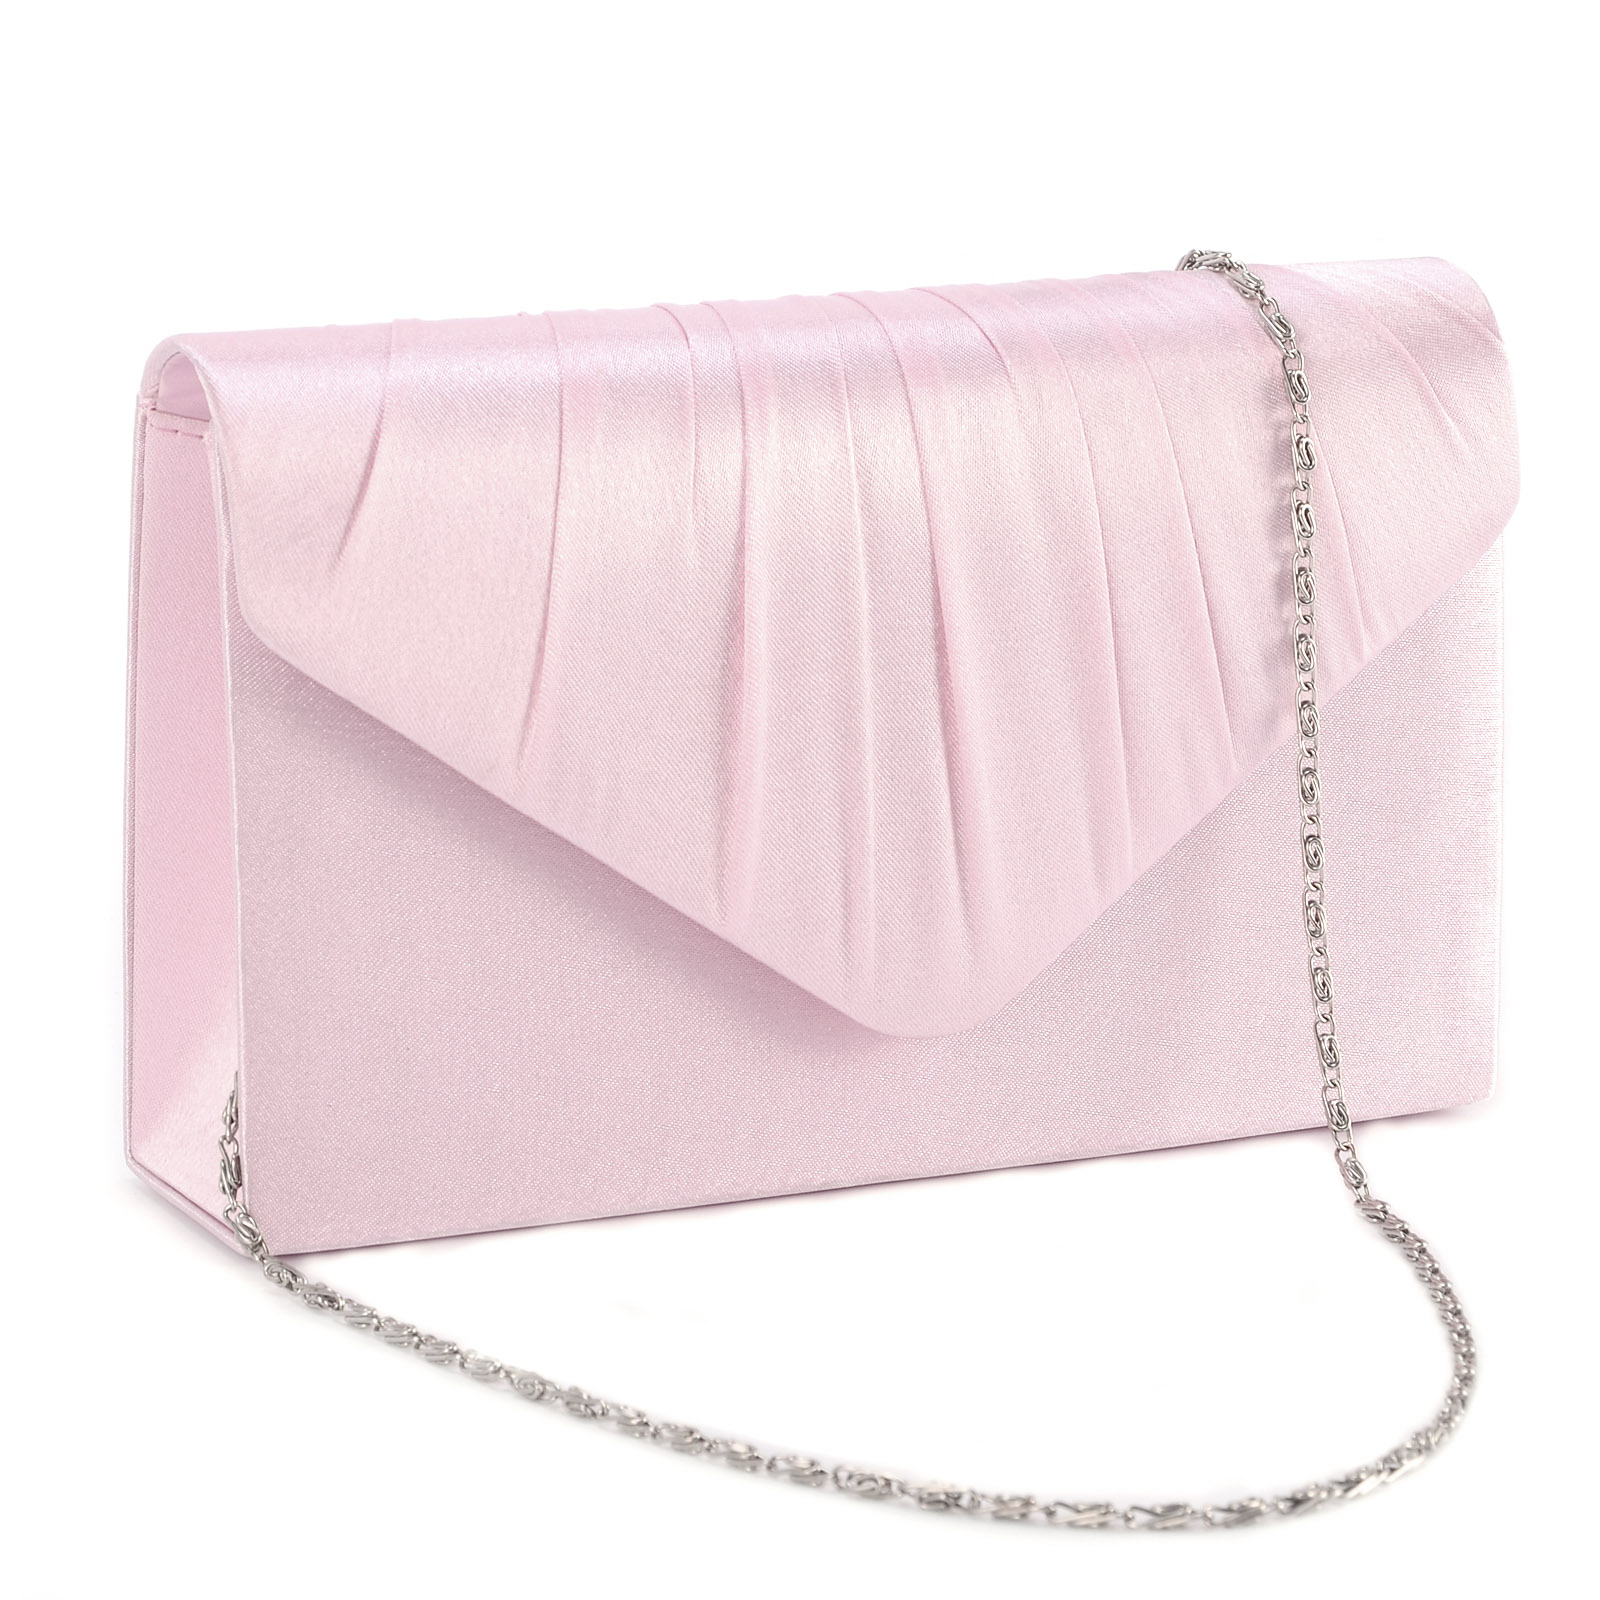 Ladies Satin Evening Clutch Bag Women Bag Purse Wedding Party Bridal Handbag | EBay